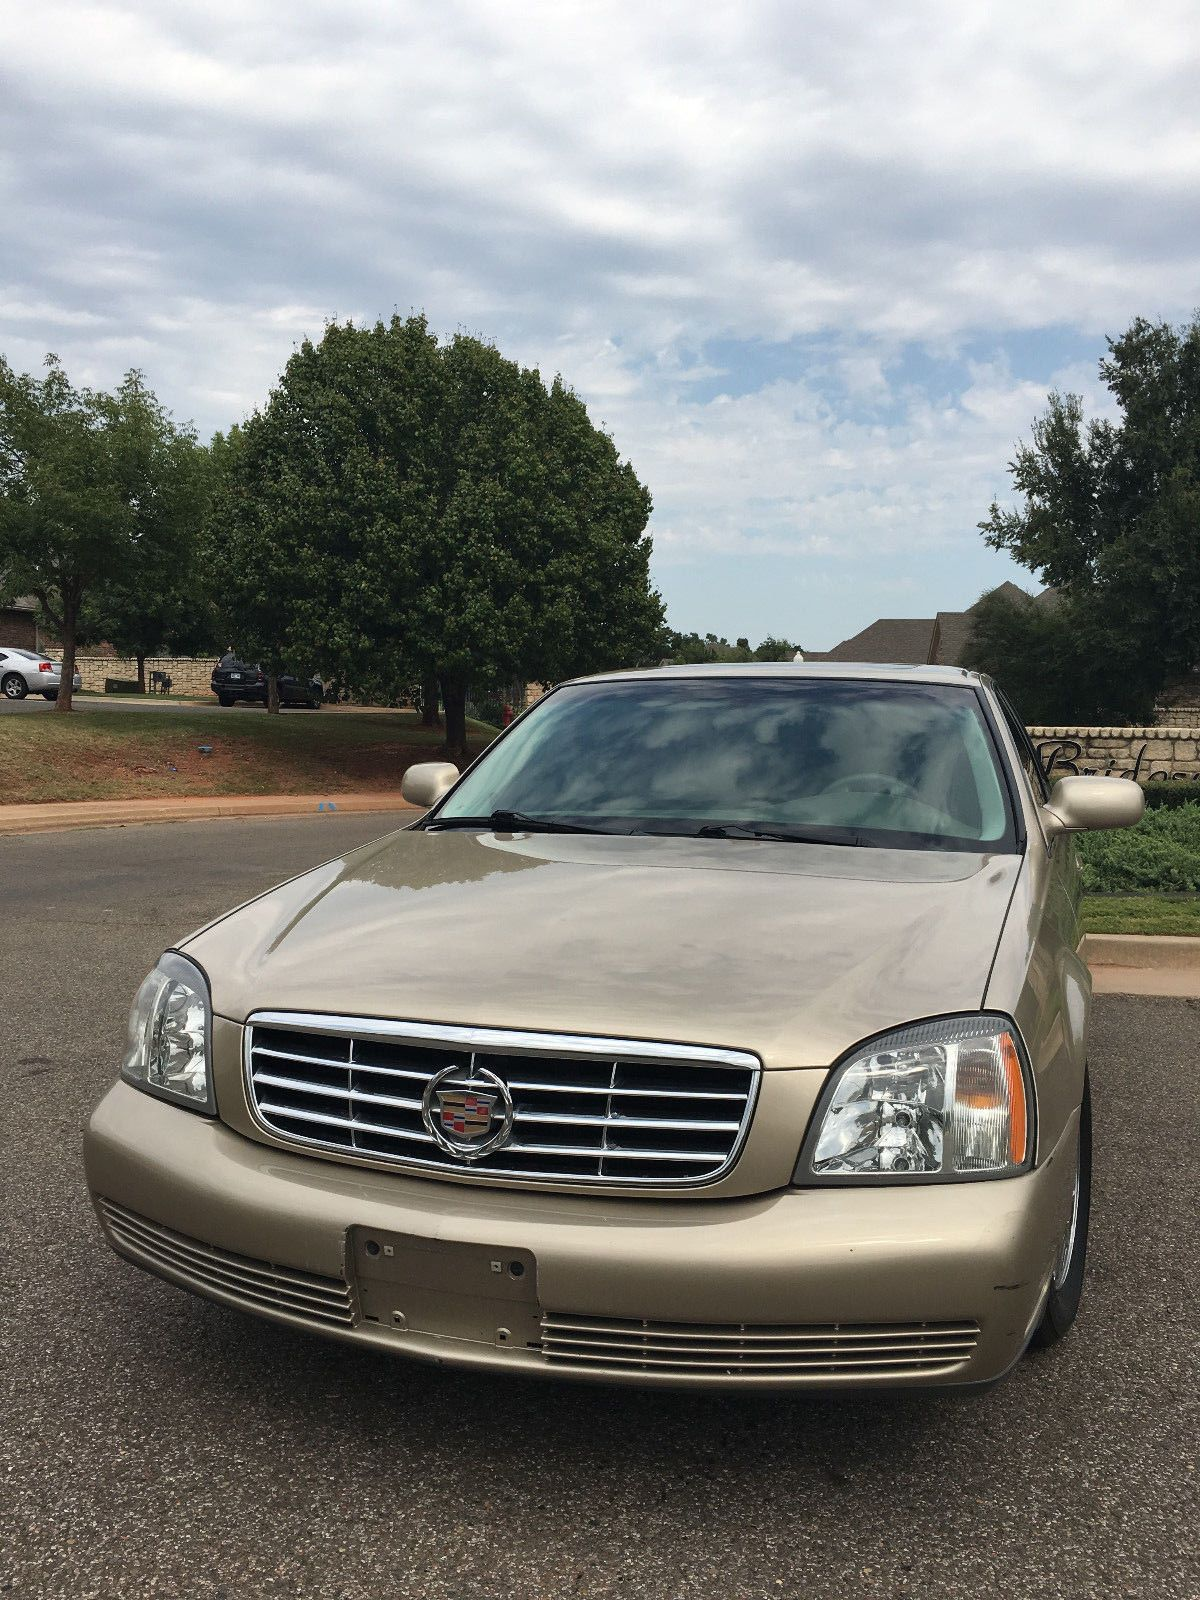 2018 cadillac deville. fine cadillac awesome amazing 2005 cadillac deville gold runs  perfect 20172018 intended 2018 cadillac deville